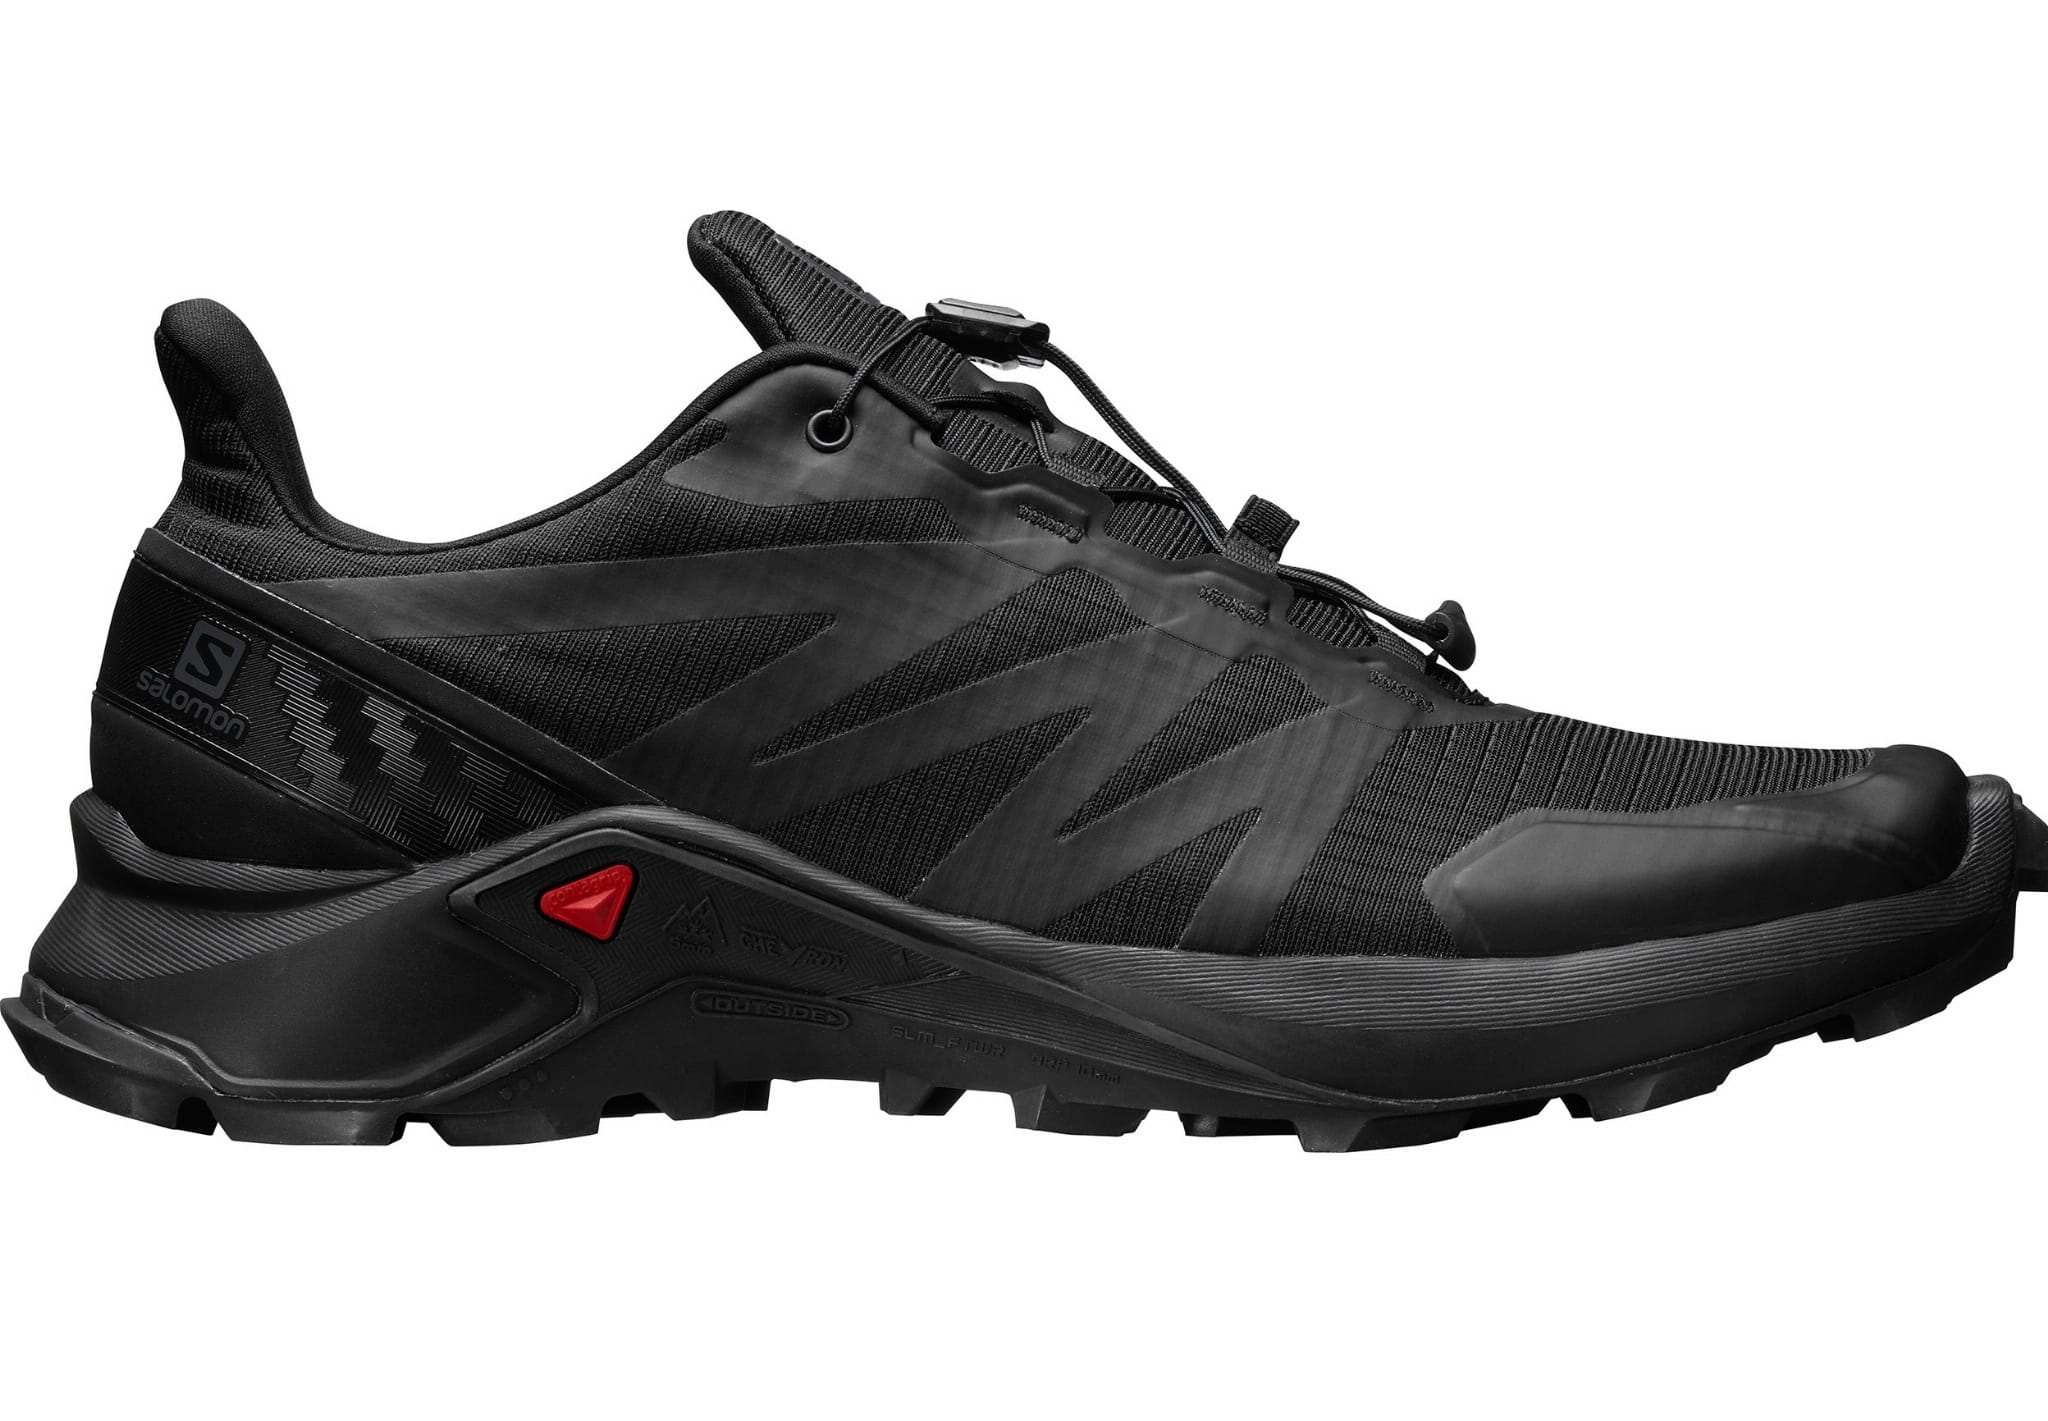 Buty Salomon Supercross Black 409300